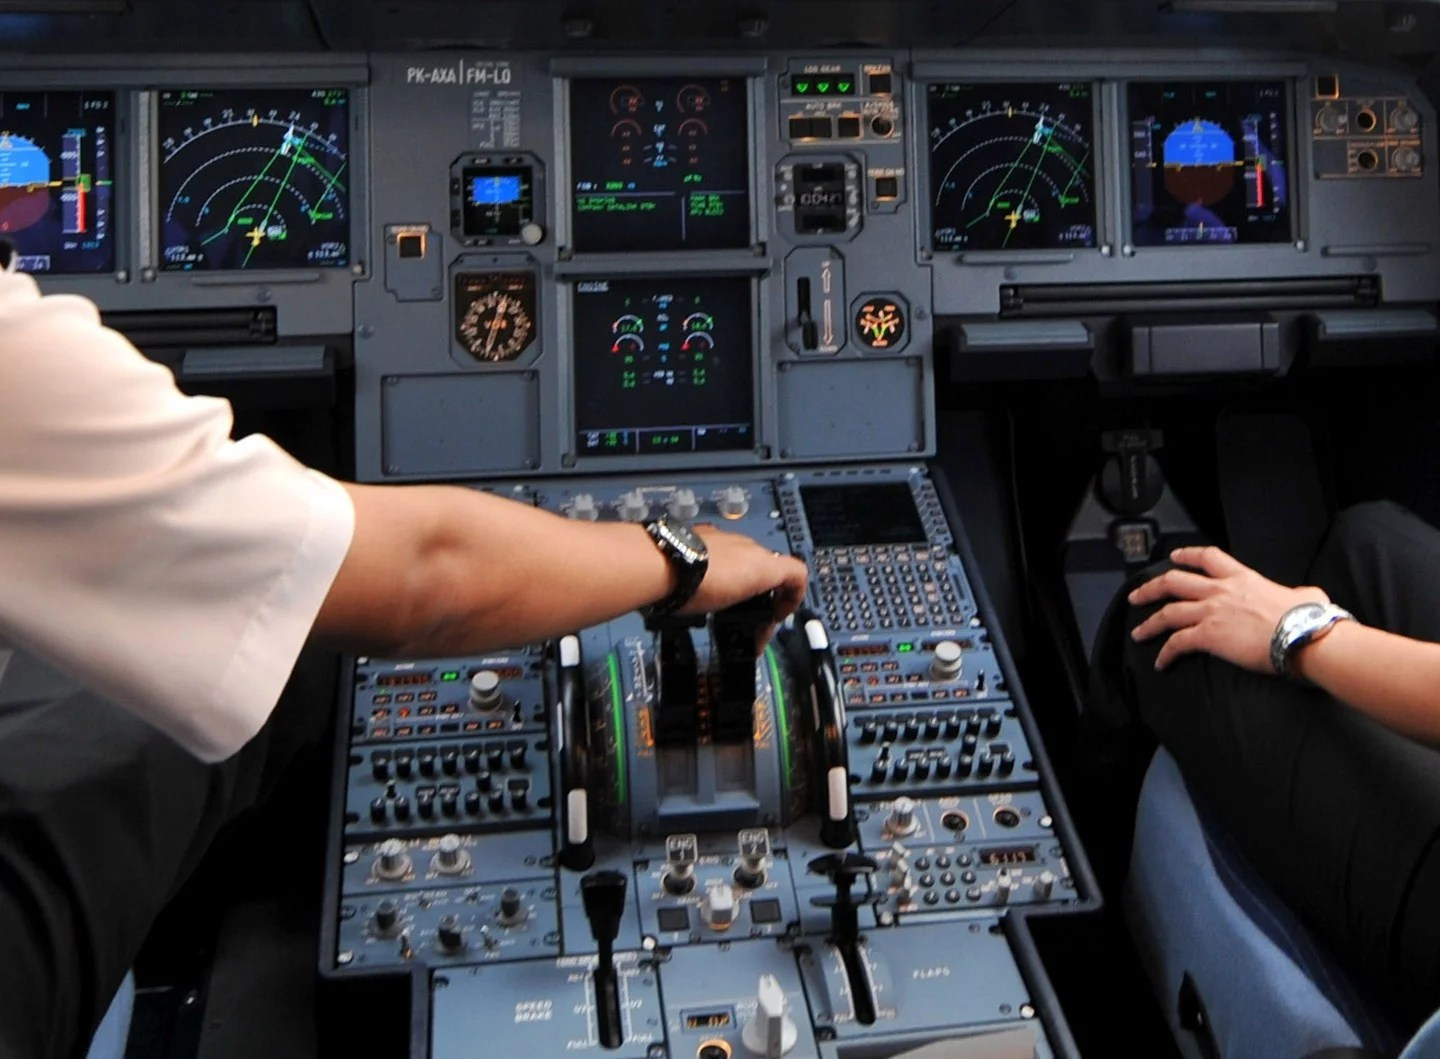 (FILES) - A photo taken on September 24, 2008 shows pilots in the cockpit of an Airbus A320 at Cengkareng airport in Jakarta. One of the two pilots on the Germanwings flight that crashed in the French Alps was locked out of the cockpit before the plane went down, killing 150 people, a source close to the investigation told AFP on March 26, 2015. All 150 people on board, including two babies and 16 German school exchange pupils, died when the Germanwings flight 4U 9525 from Barcelona to Duesseldorf smashed into the mountains after an eight-minute descent. AFP PHOTO / ADEK BERRY (Photo credit should read ADEK BERRY/AFP/Getty Images)